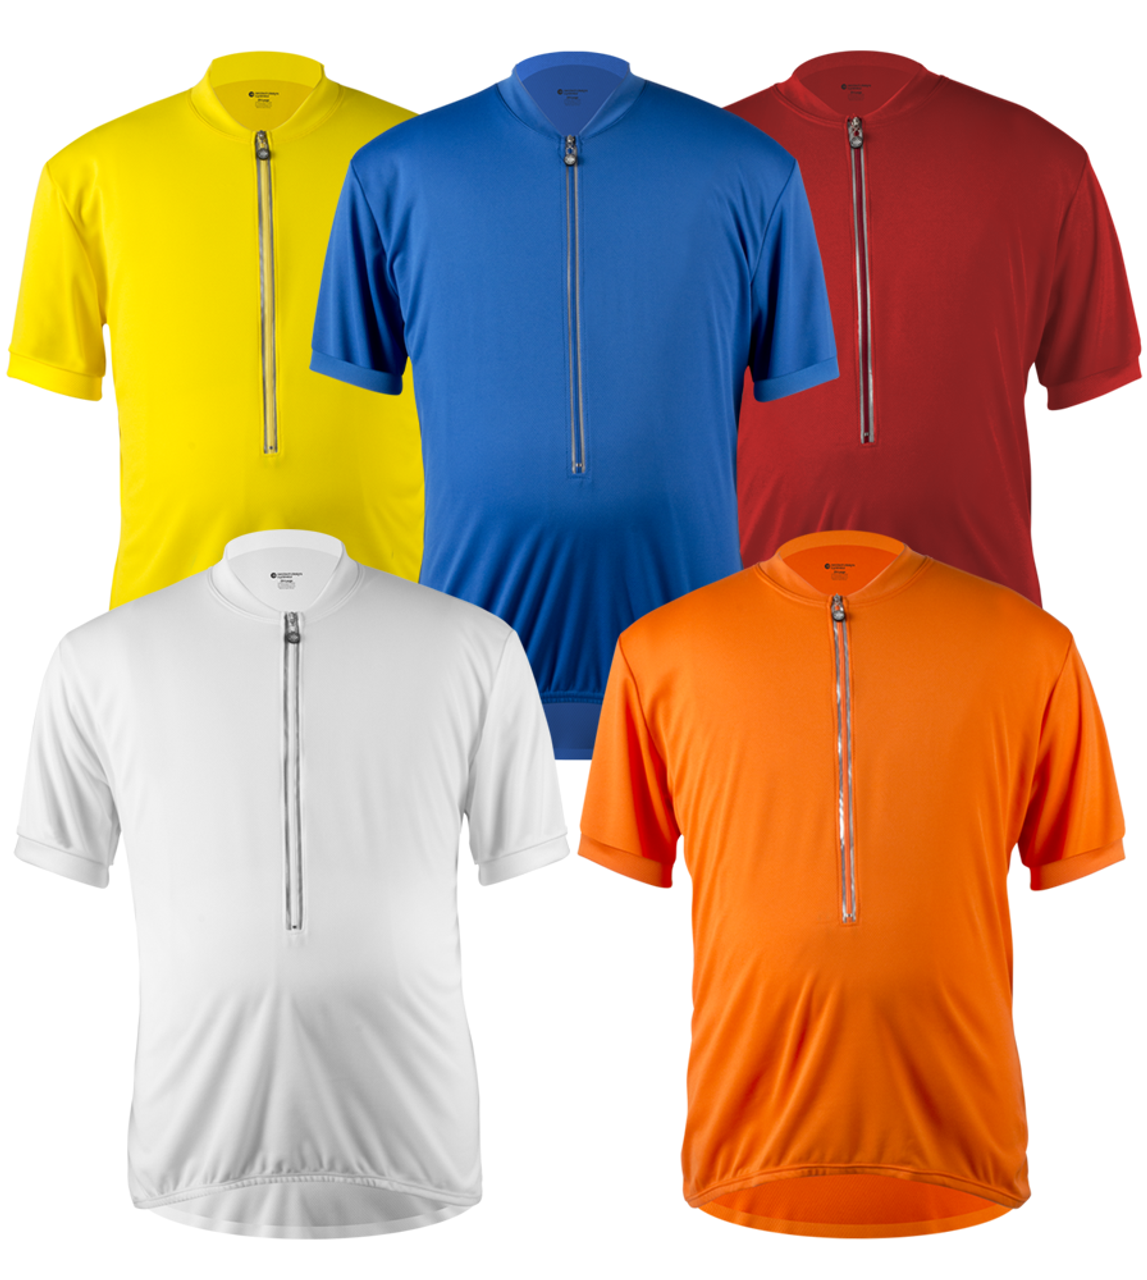 Big Men s Cycling Solid Jersey All Colors 585a6cf3a